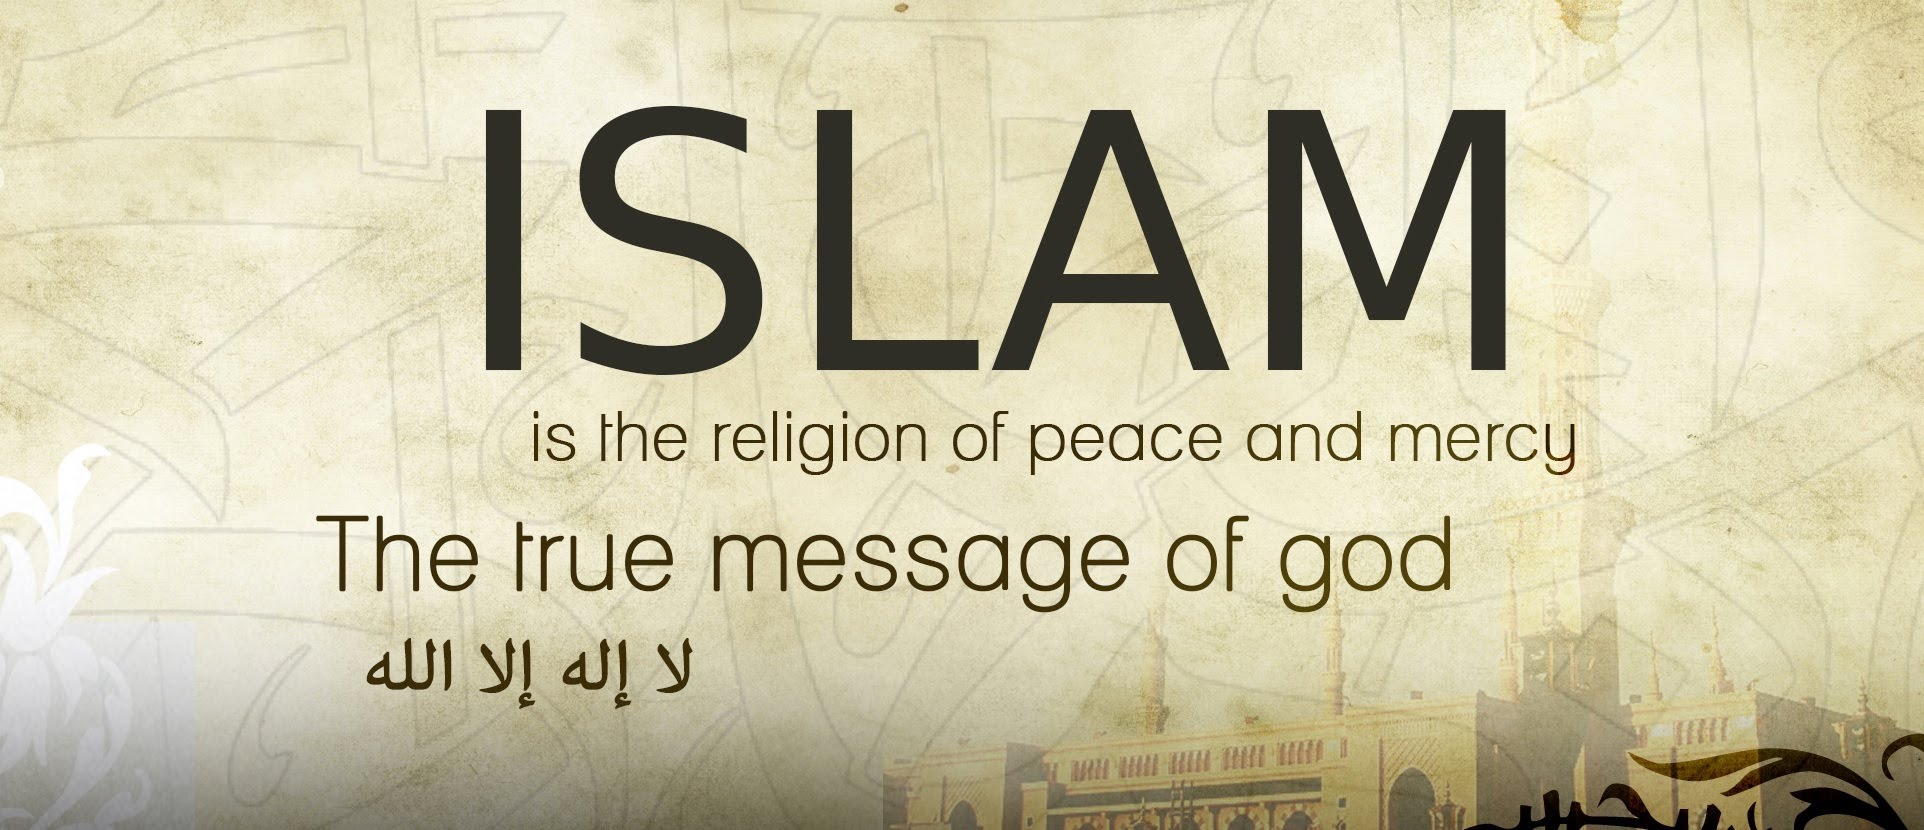 whay-is-islam-the-ture-religion